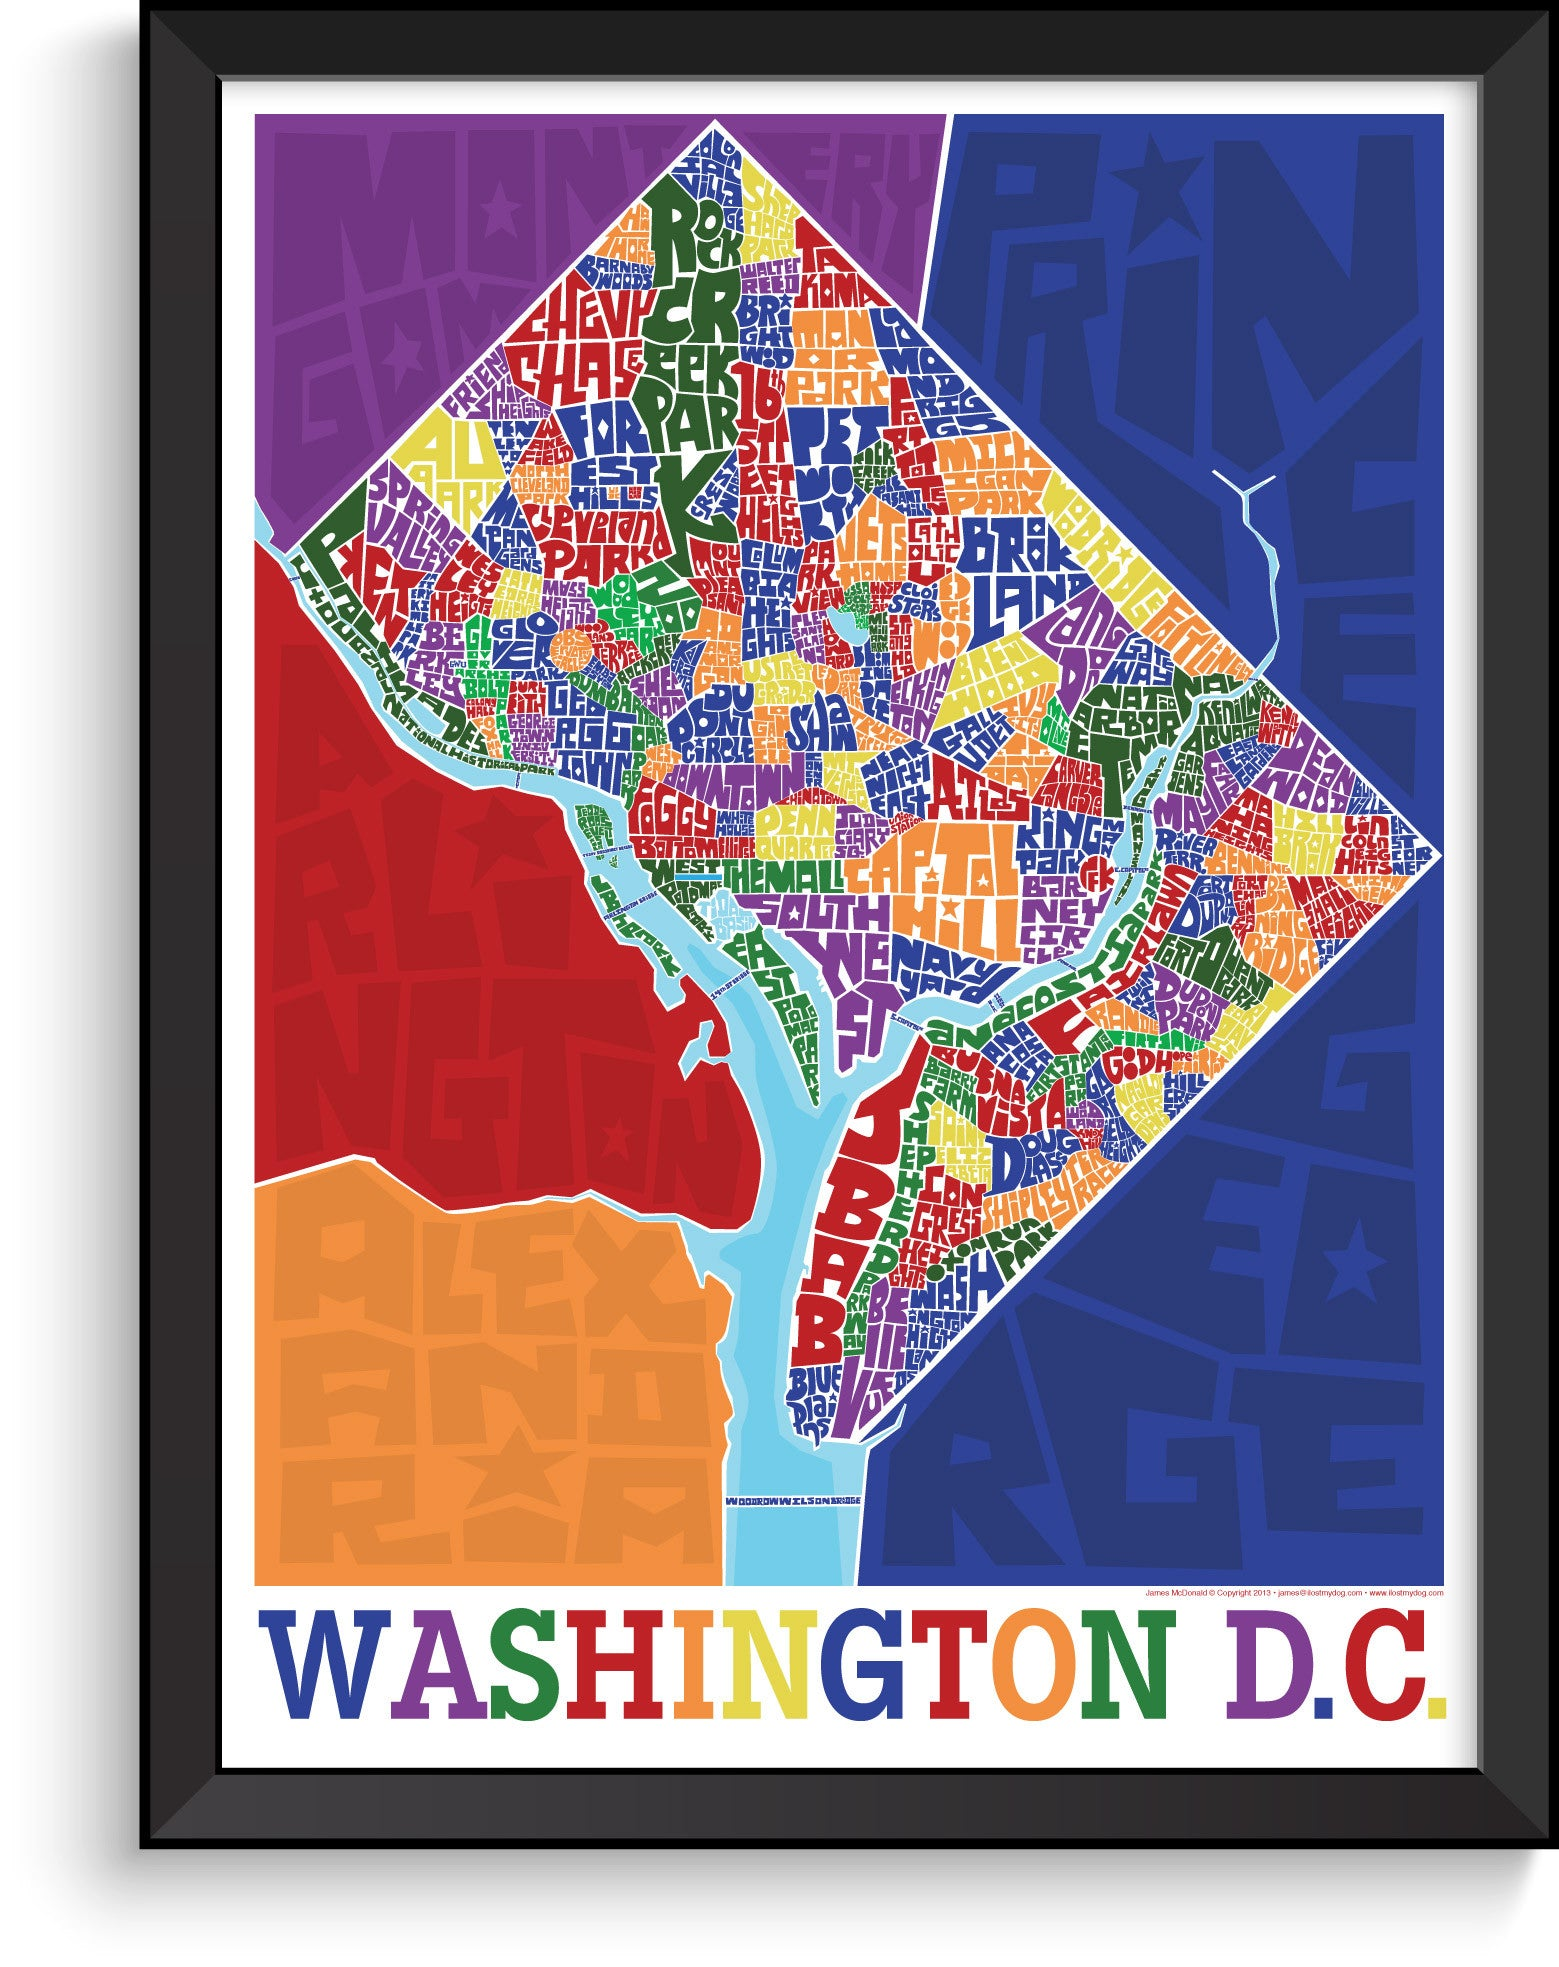 Washington DC Neighborhood Type Map – I Lost My Dog on city map dc, map with metro stops dc, civil war map washington dc, wmata map washington dc, county map washington dc, usa map washington dc, google maps dc, zip code map nw dc, simple map washington dc, subway map for washington dc, map showing washington, printable map washington dc, map ofwashington dc, star map washington dc, street map with metro stations washington dc, us map showing dc, neighborhood and ward map dc, print map washington dc, interactive metro map washington dc, united states map with dc,